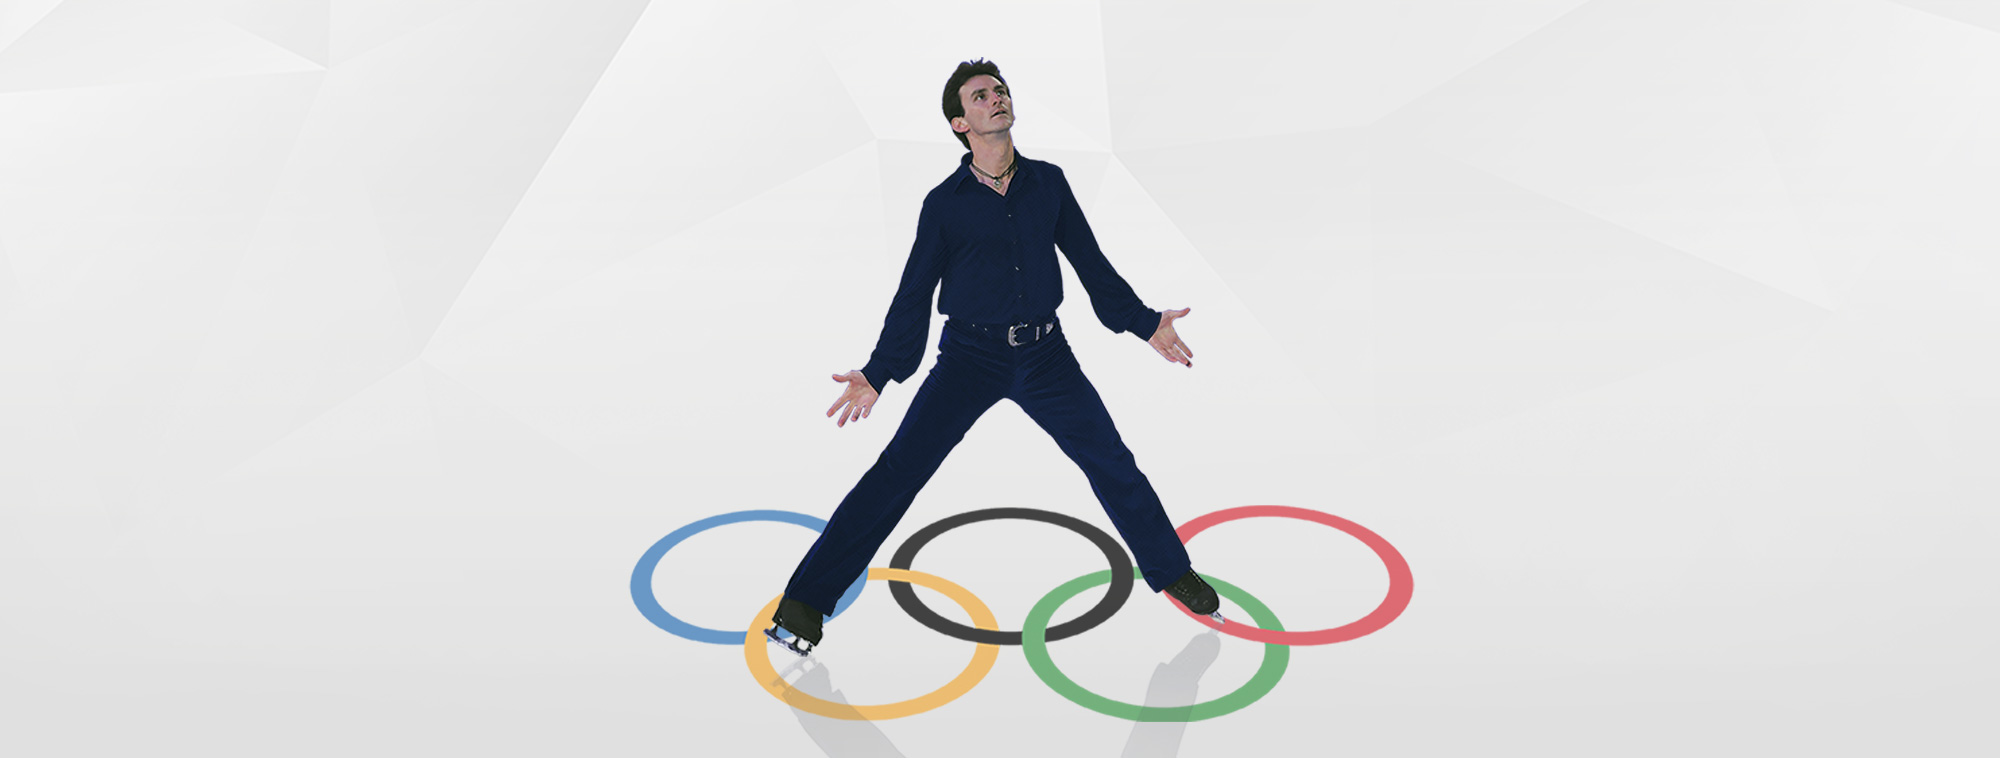 Todd Eldredge Olympic Figure Skater